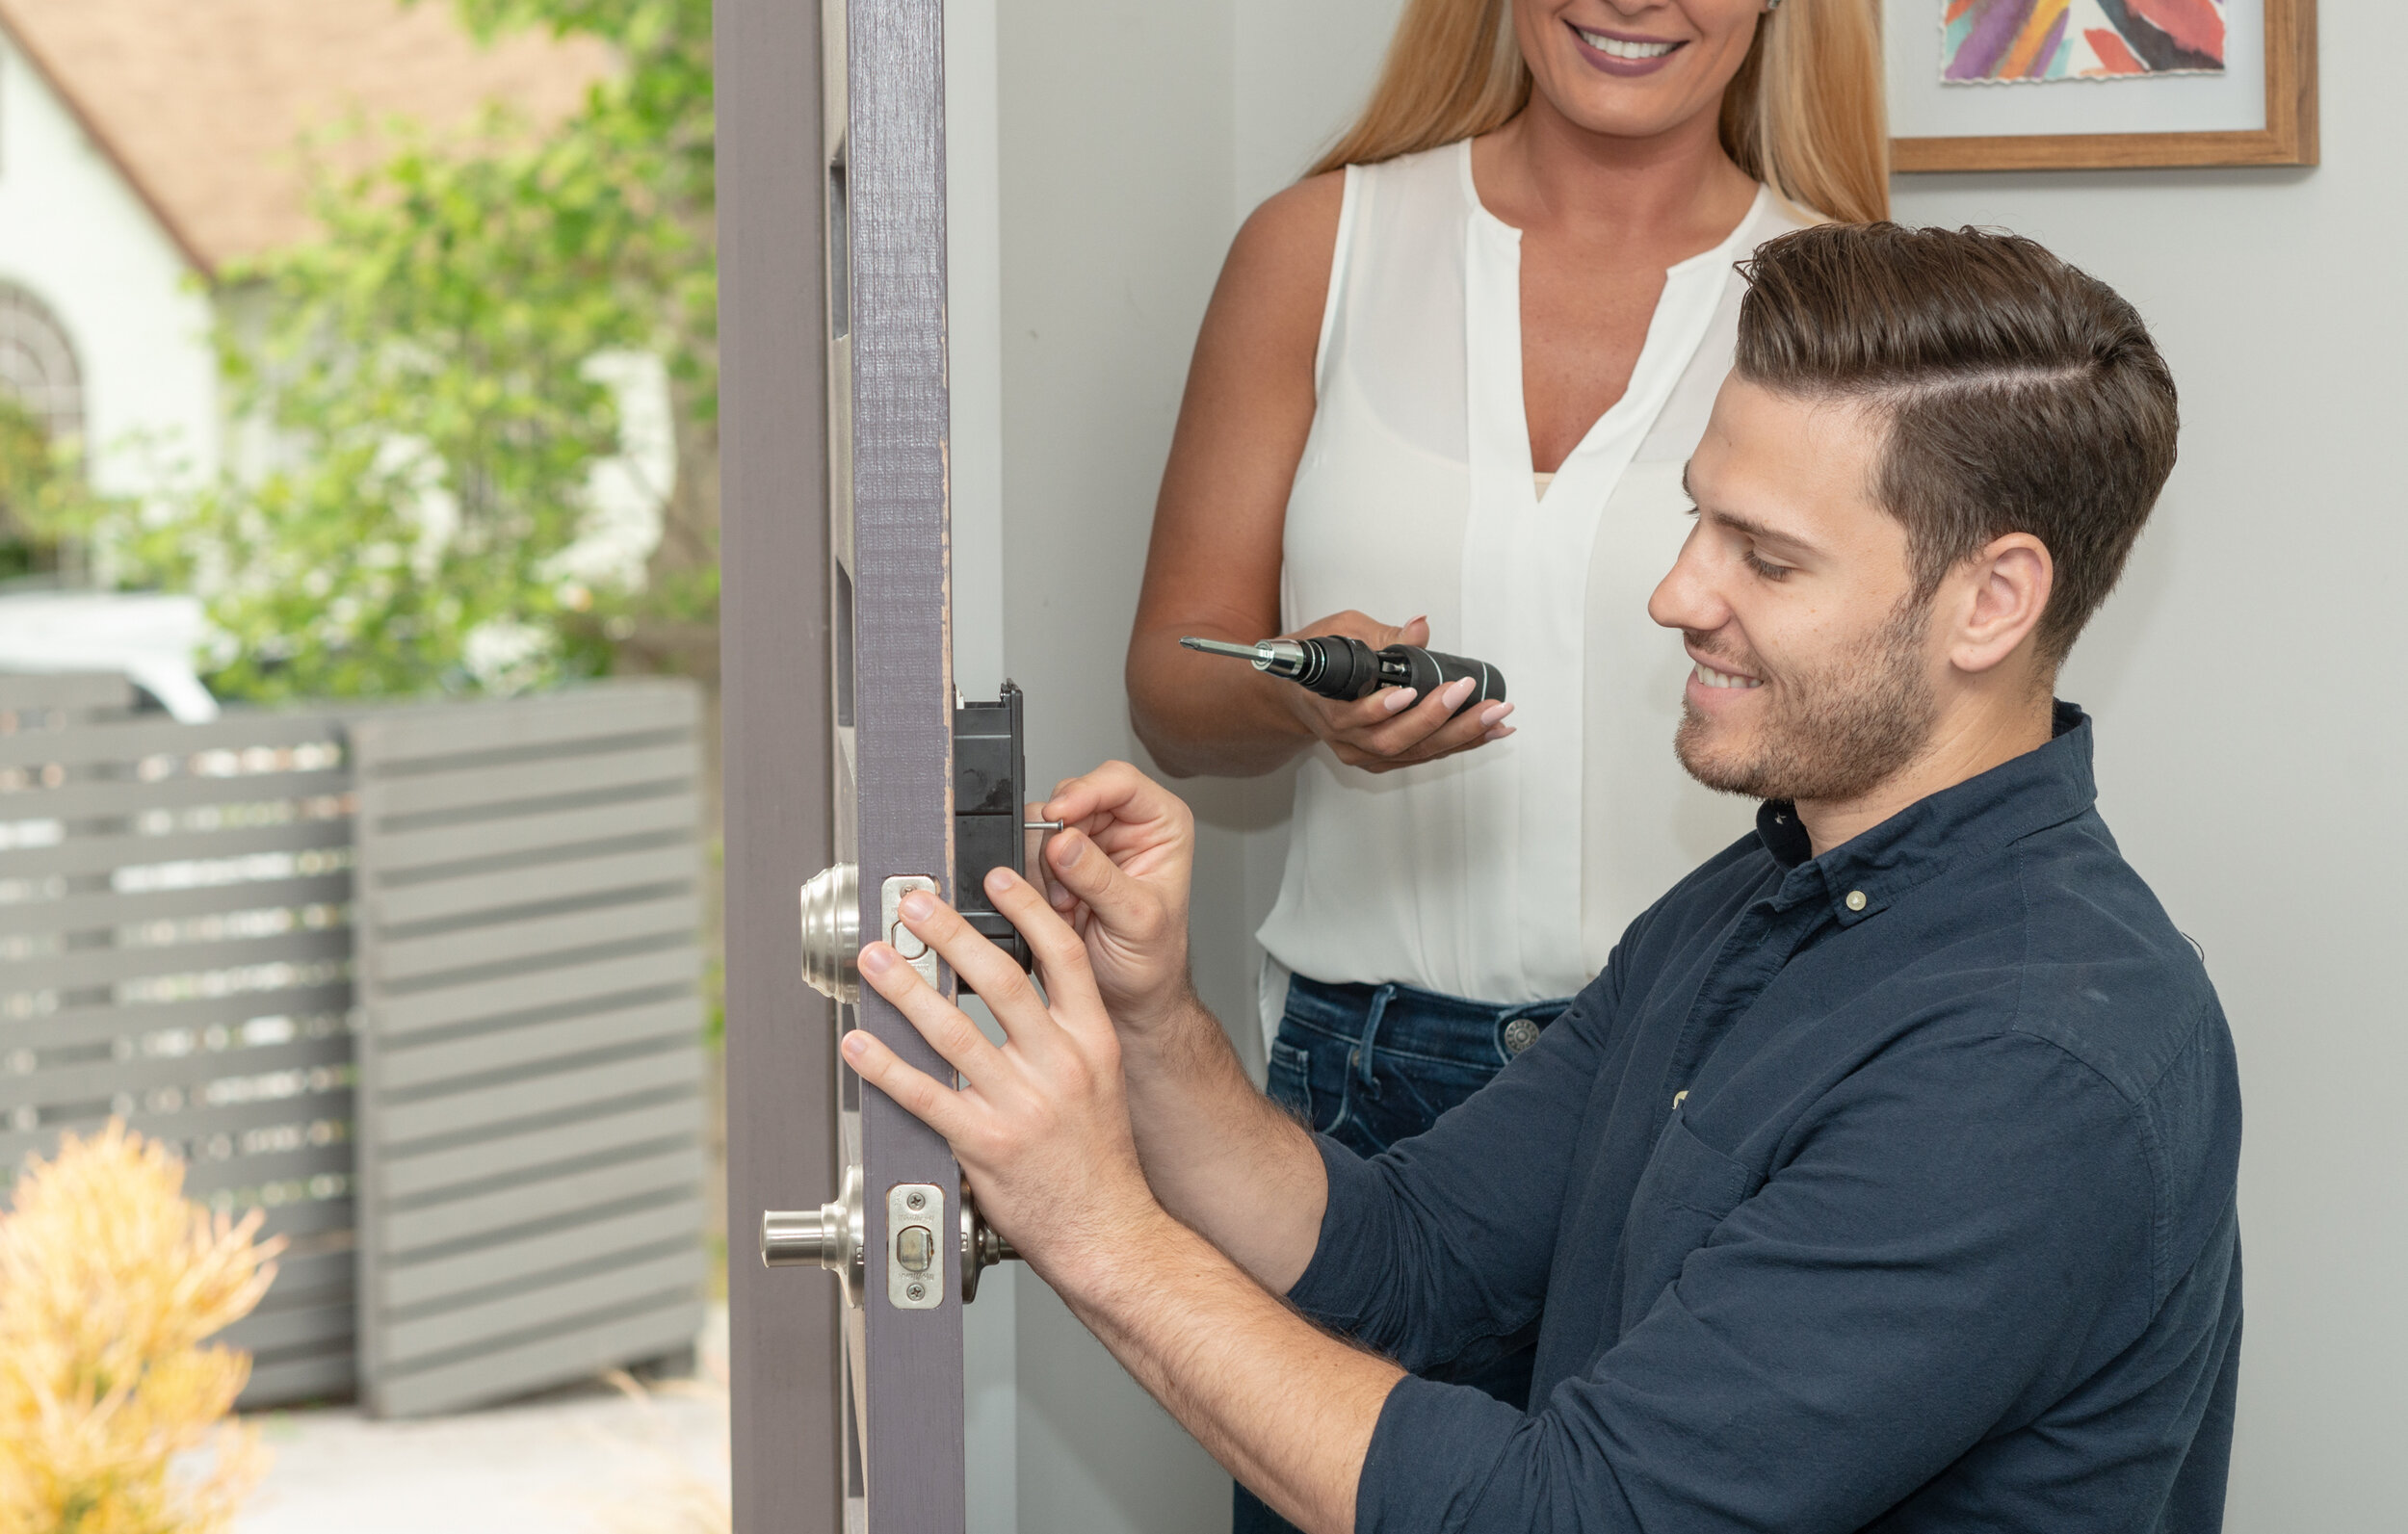 To install, just remove the existing screws and mount the module bracket to your door!